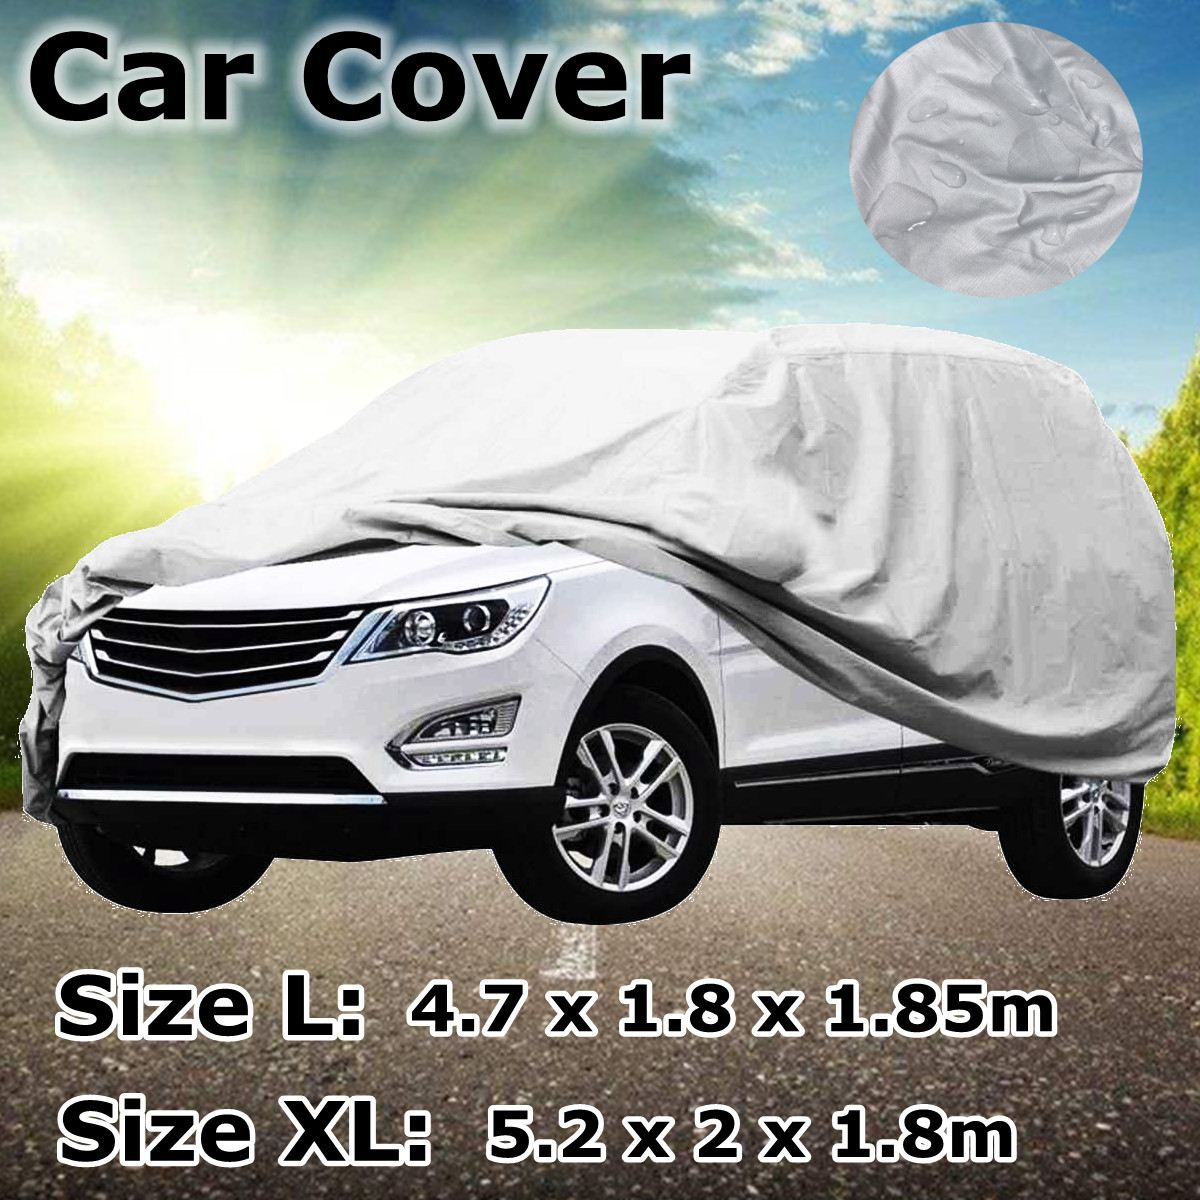 Car Cover L XL Size SUV Full Car Covers Snow Ice Sun Rain Resistant Protection Waterproof Dustproof Outdoor Indoor